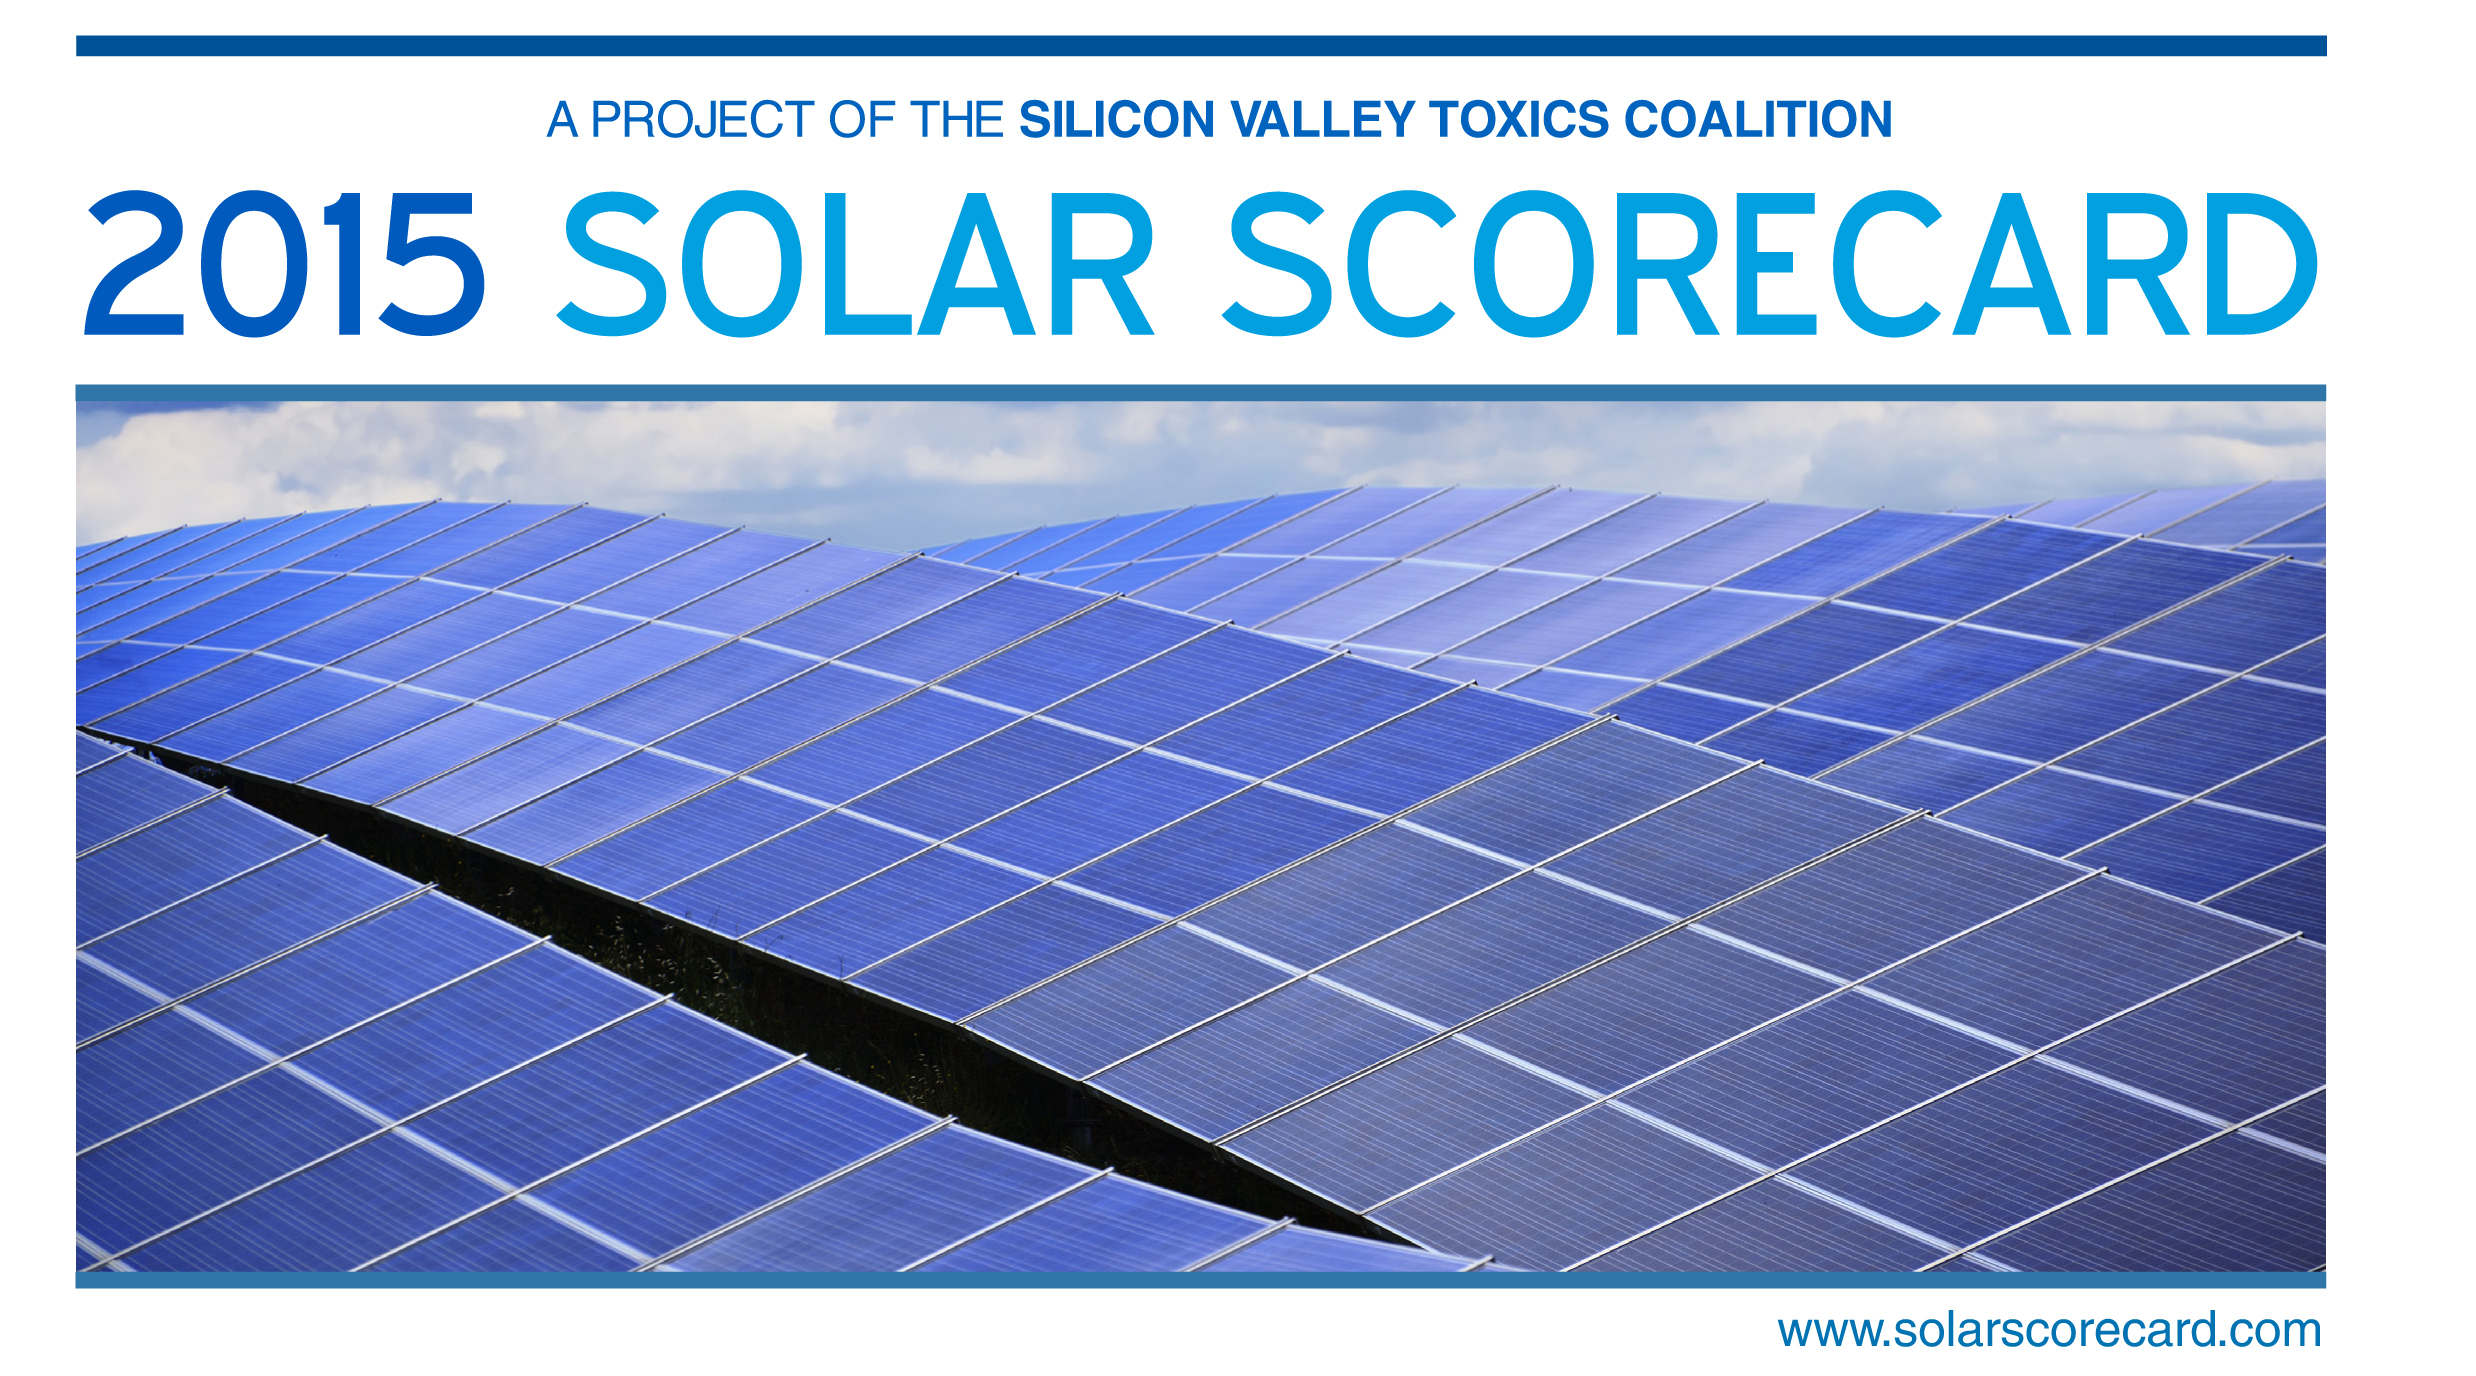 Solar Scorecard Ranking Module Manufacturers According To Electrical Technology Series Connection Of Panel And Parallel Environmental Social Criteria